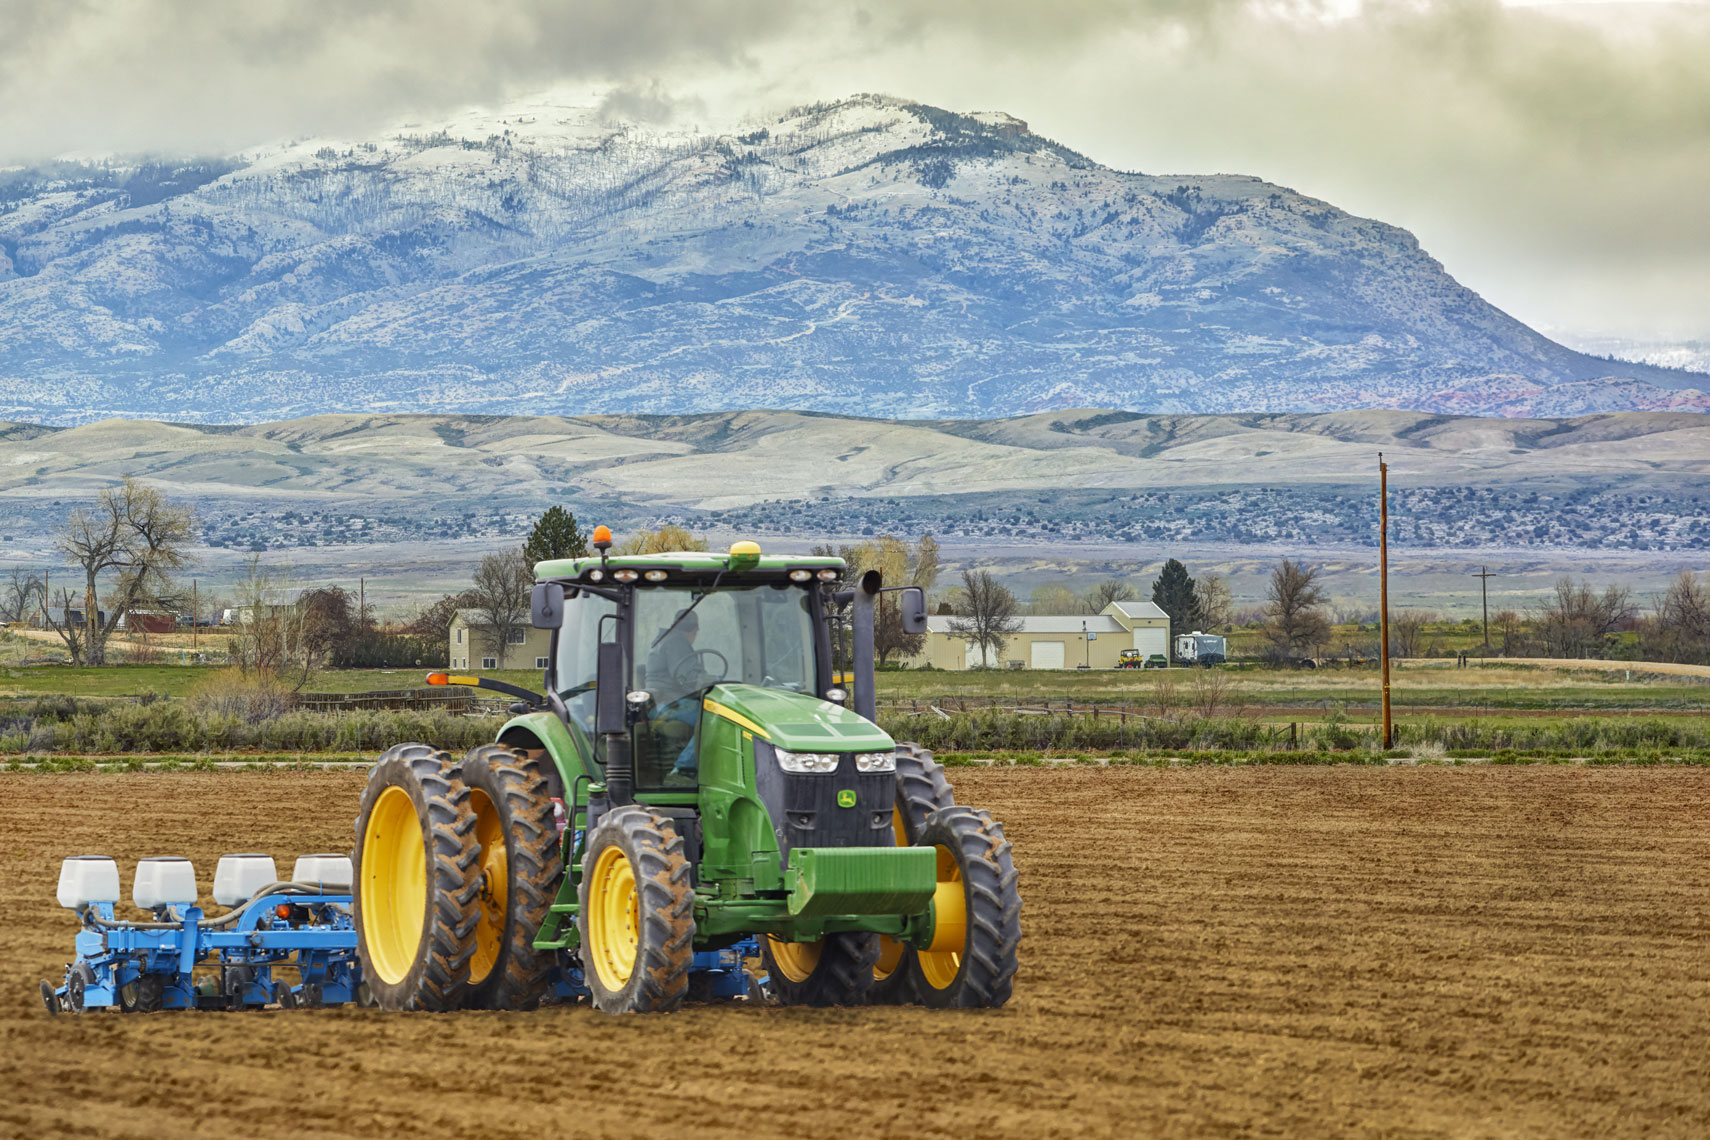 John Deer tractor/plowing field/mountains/agriculture photography